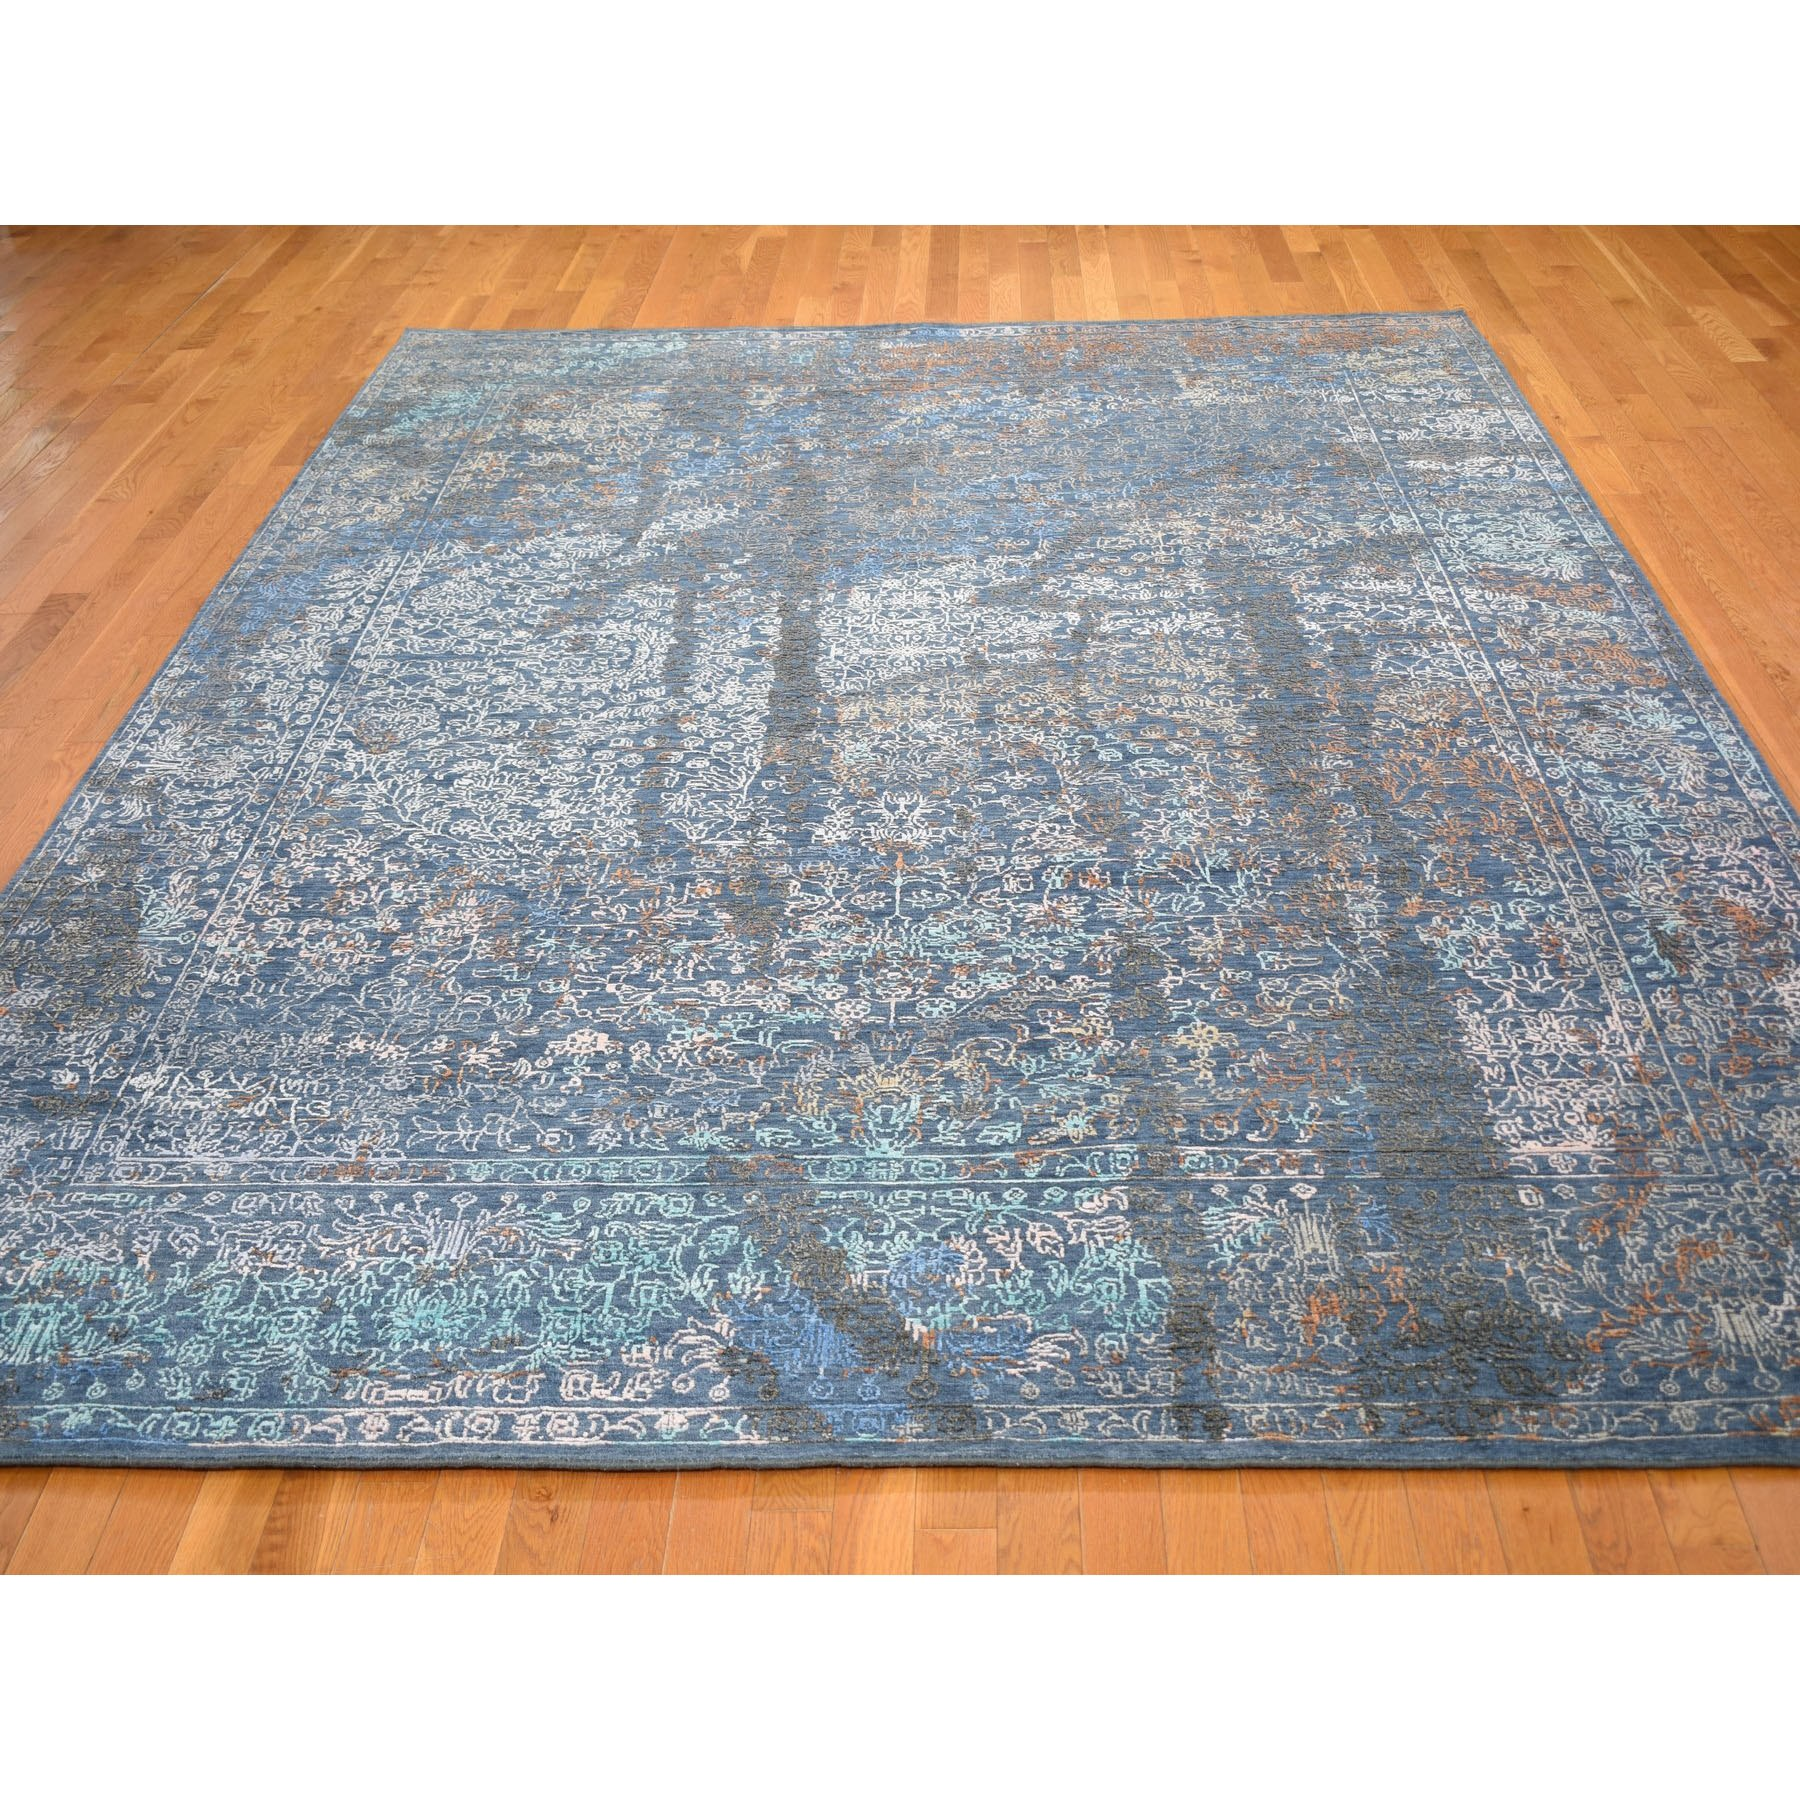 9'x12' Blue Abstarct Design Wool And Silk Hand Knotted Oriental Rug